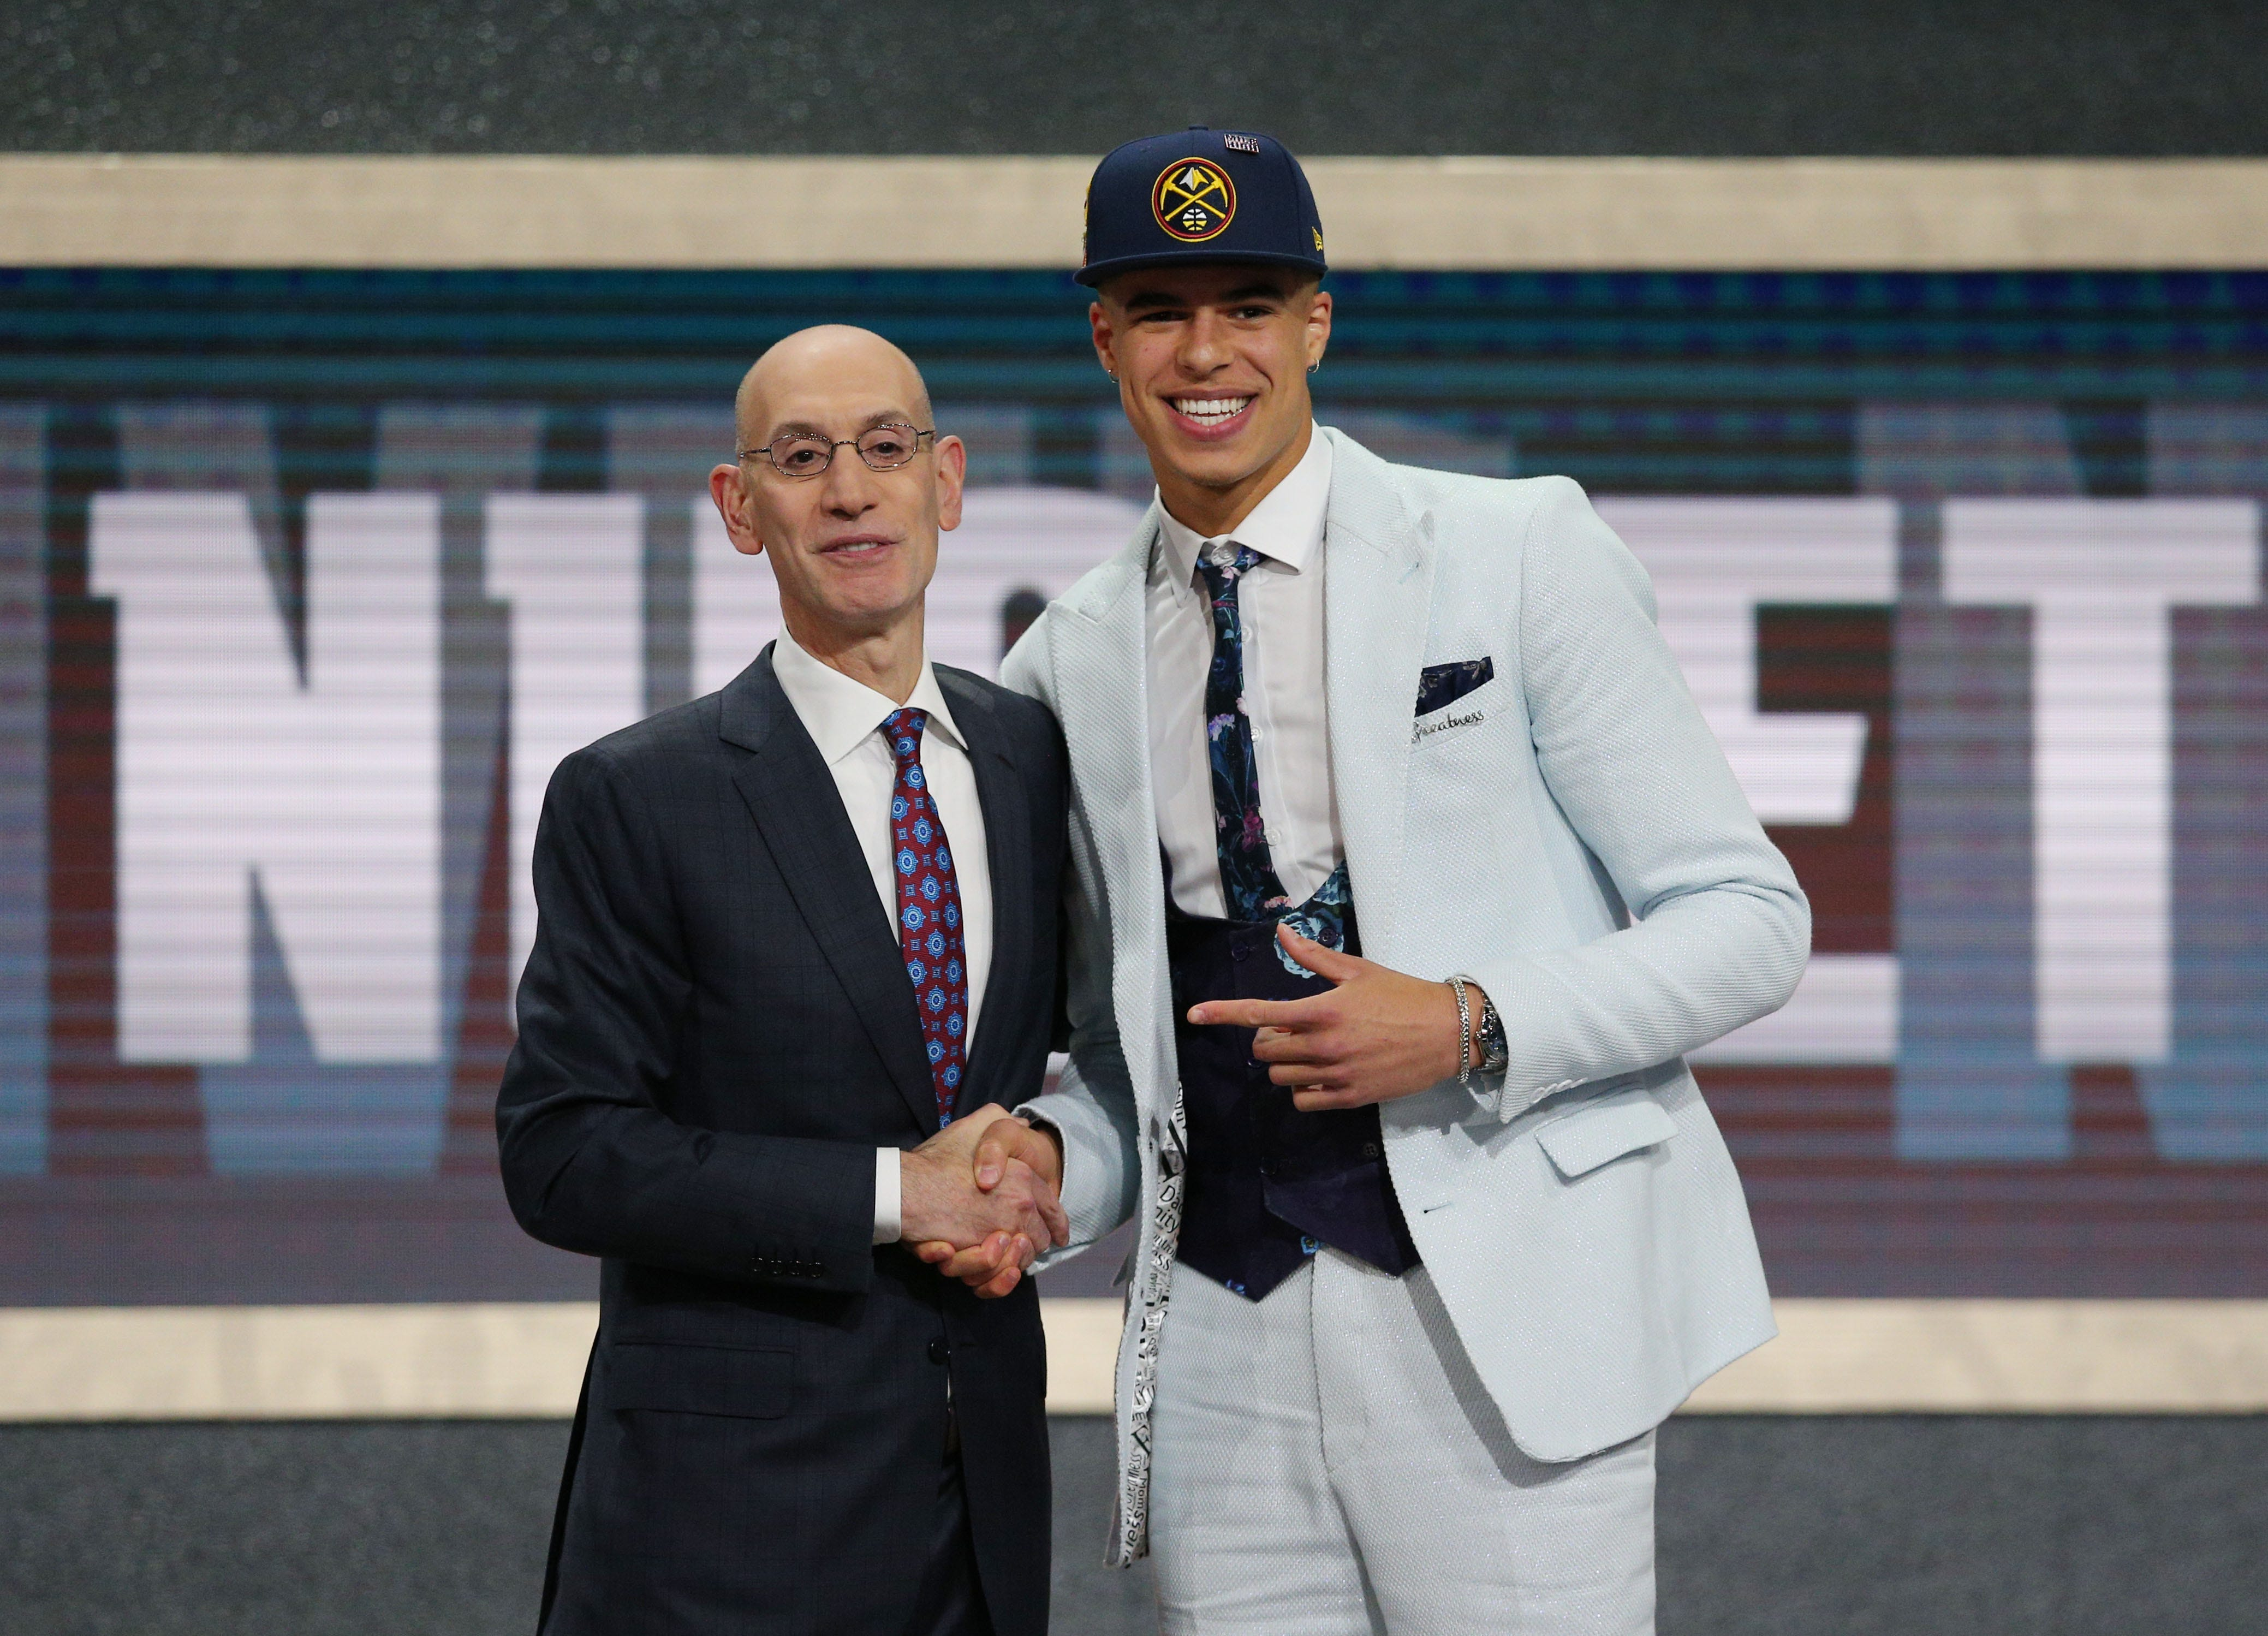 Steal of the draft? Nuggets may have hit the jackpot with Michael Porter Jr.